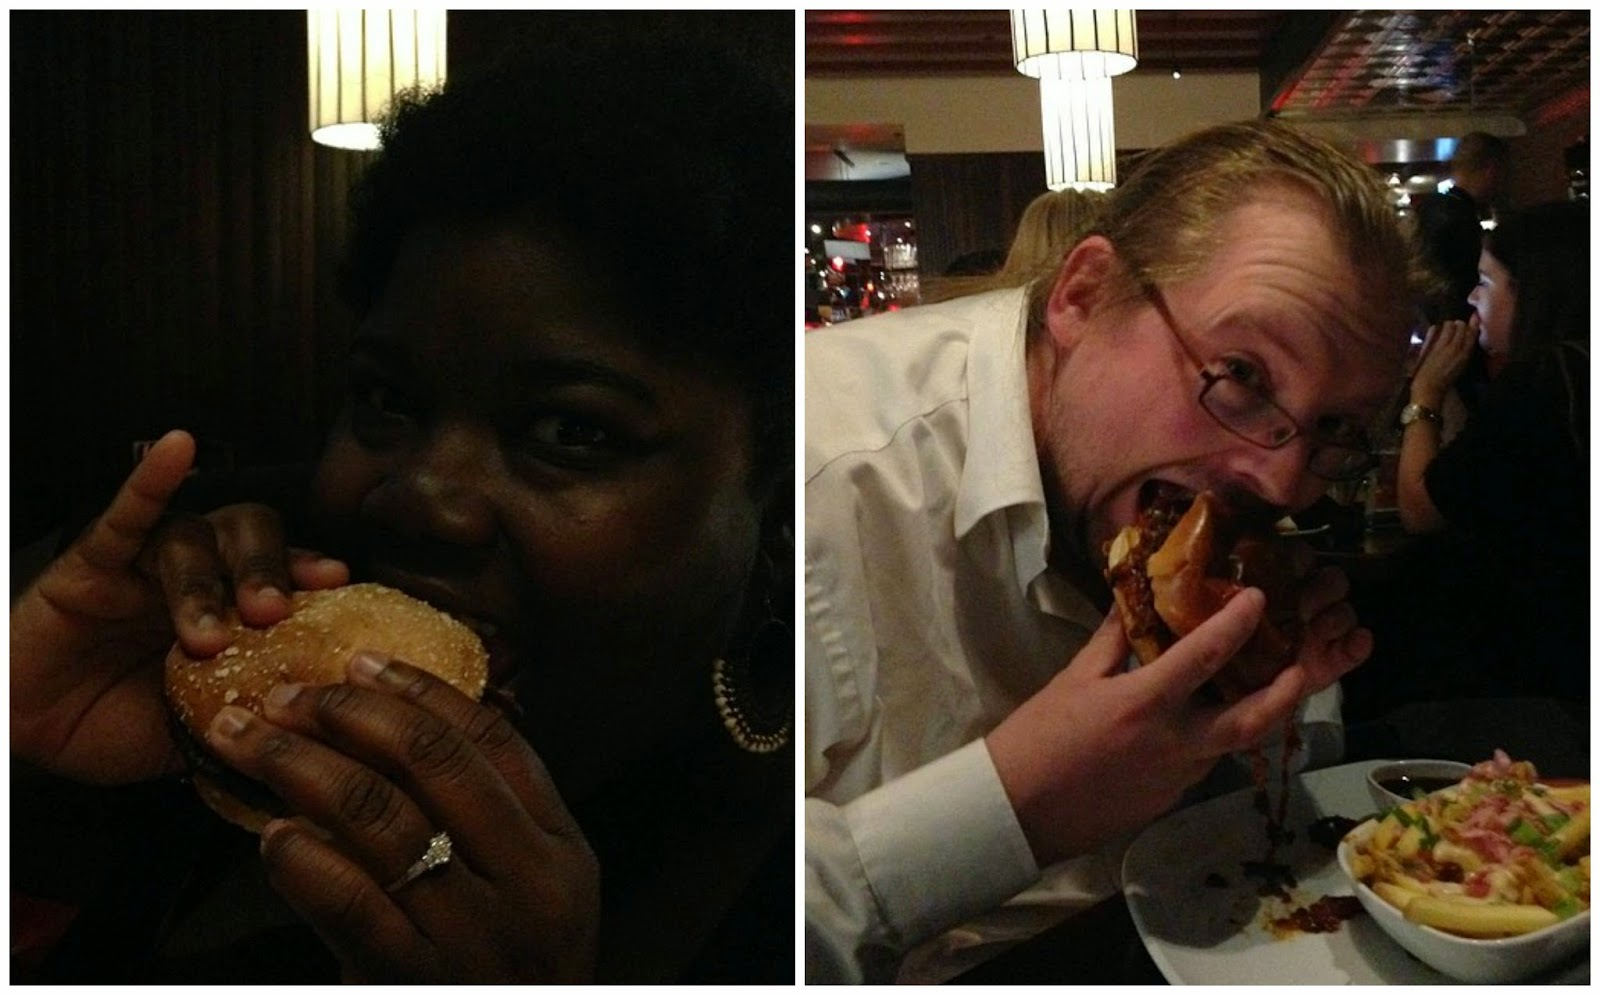 Getting our #burgerfaces on.